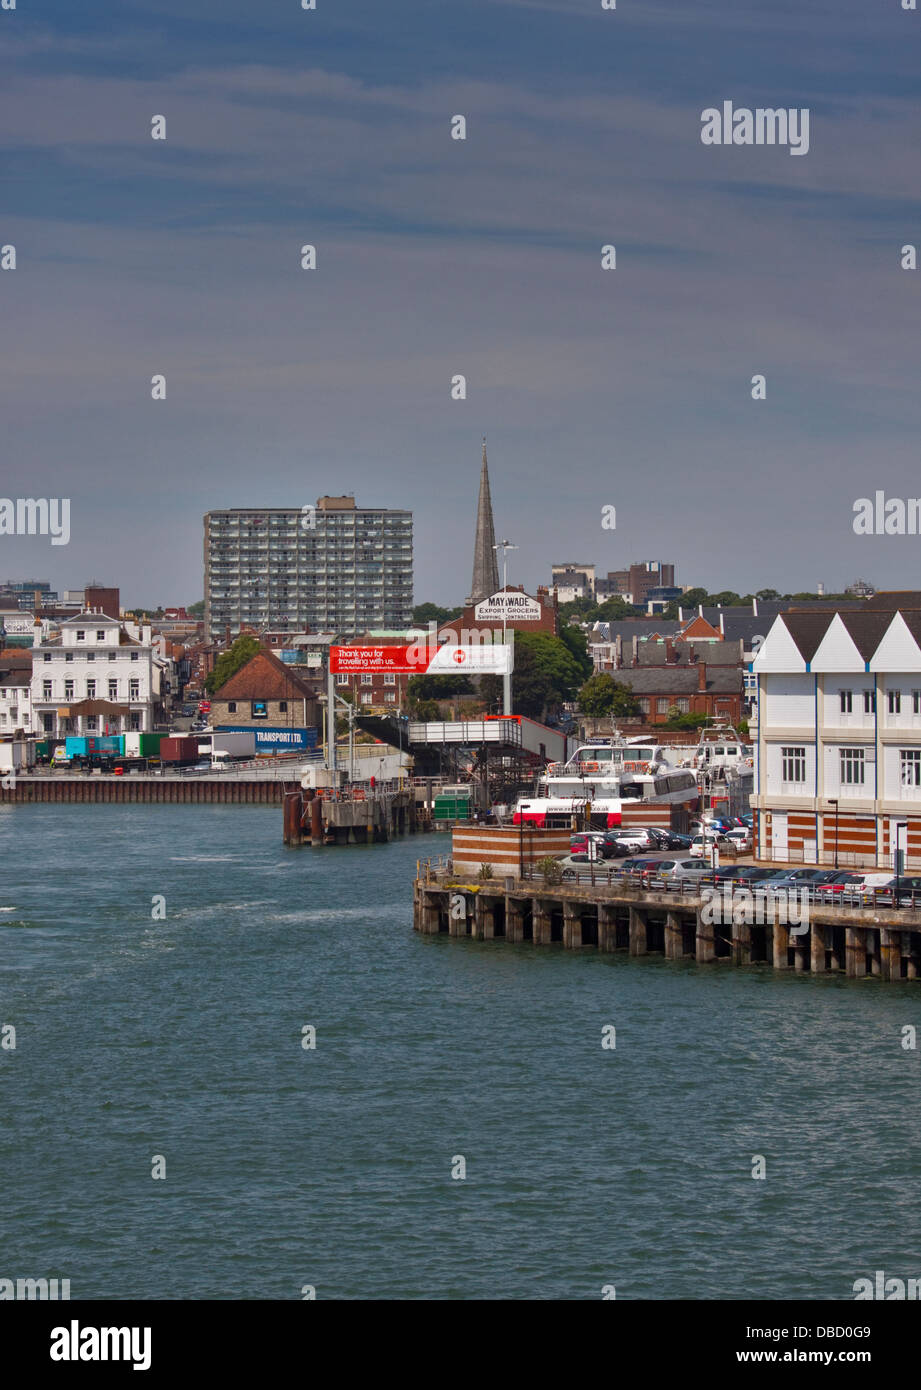 Red Funnel Ferries Terminal and Quayside, Southampton, Hampshire, England - Stock Image